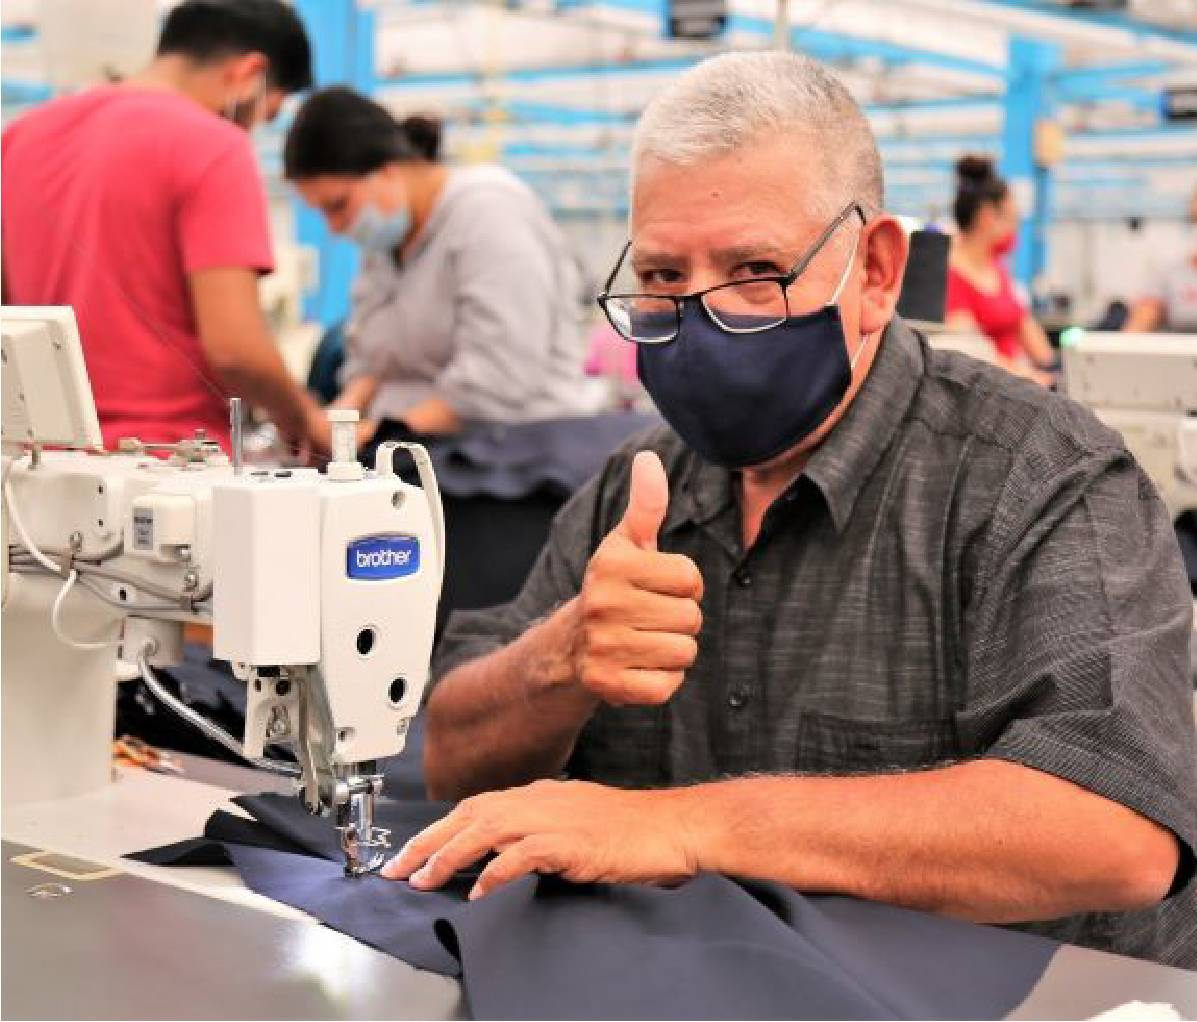 Male Industrias Manufactureras MyR seamstress wearing face mask holding his thumb up to camera